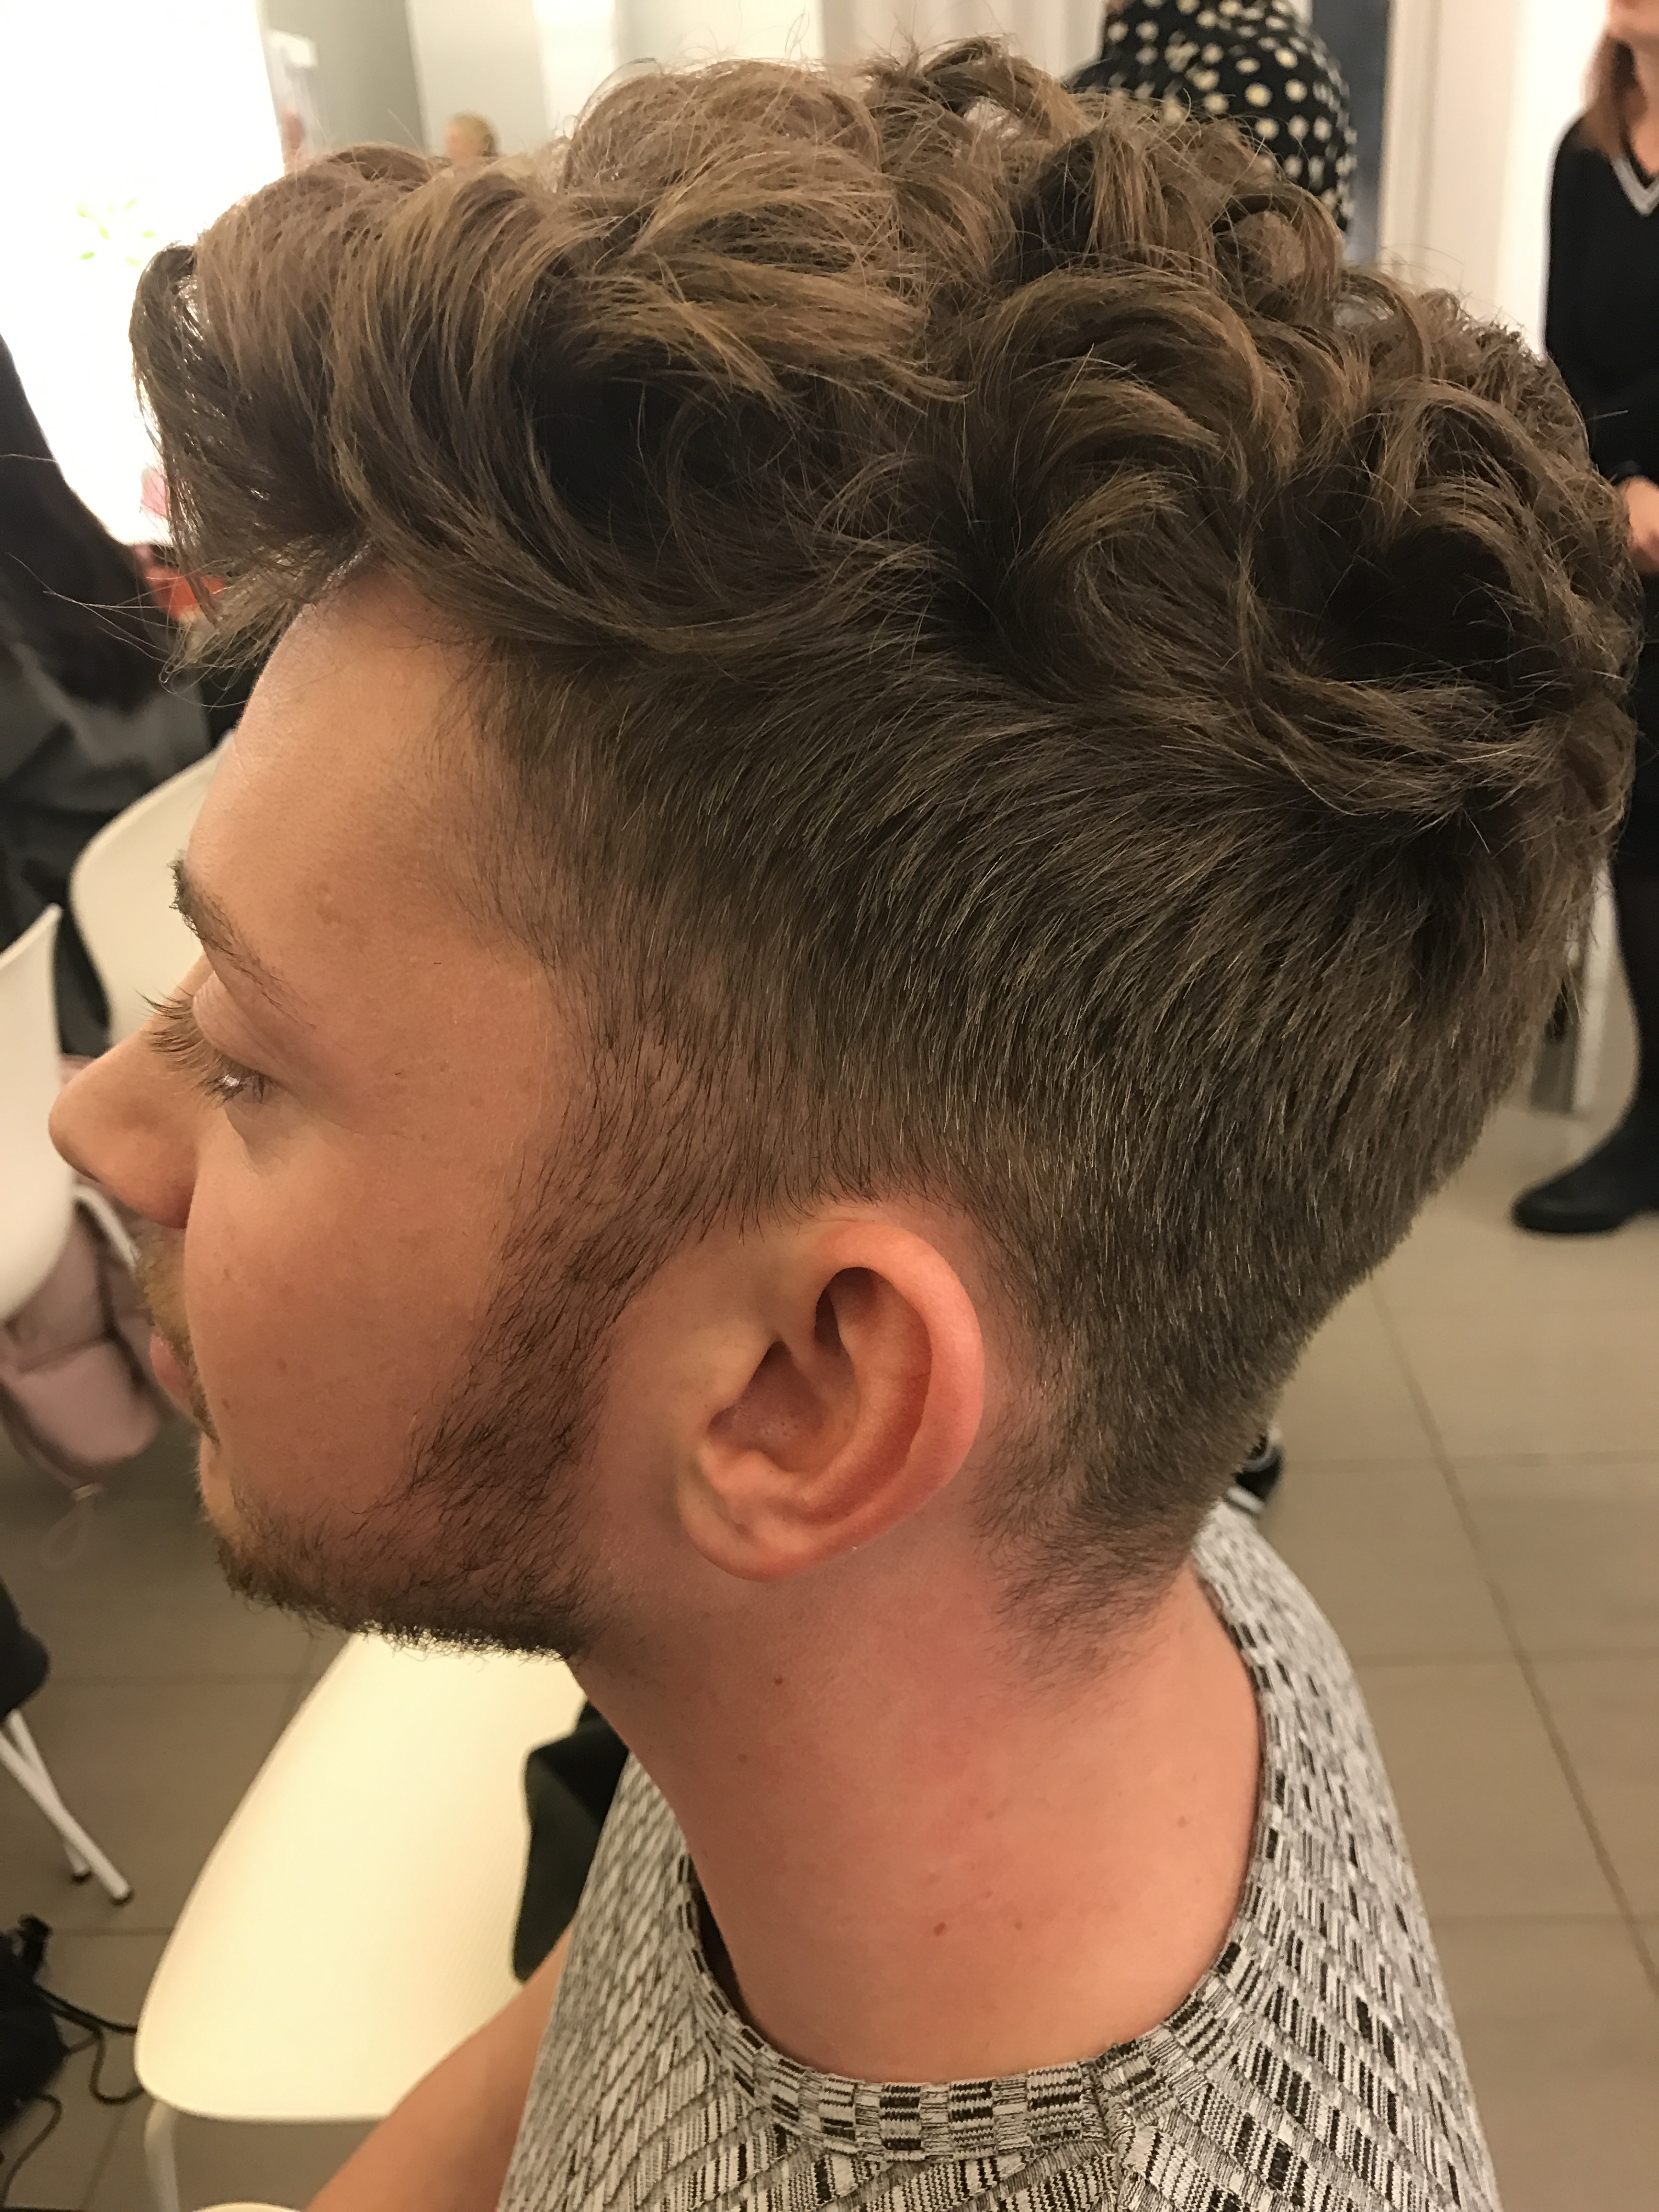 Straight hair perm guys - Gone Are The Days Of The Tightly Wound Kevin Keegan Bubble Perm Or Justin Timberlake S Crunchy Spirals From 2000 Think More Of The Rugged Jon Snow From